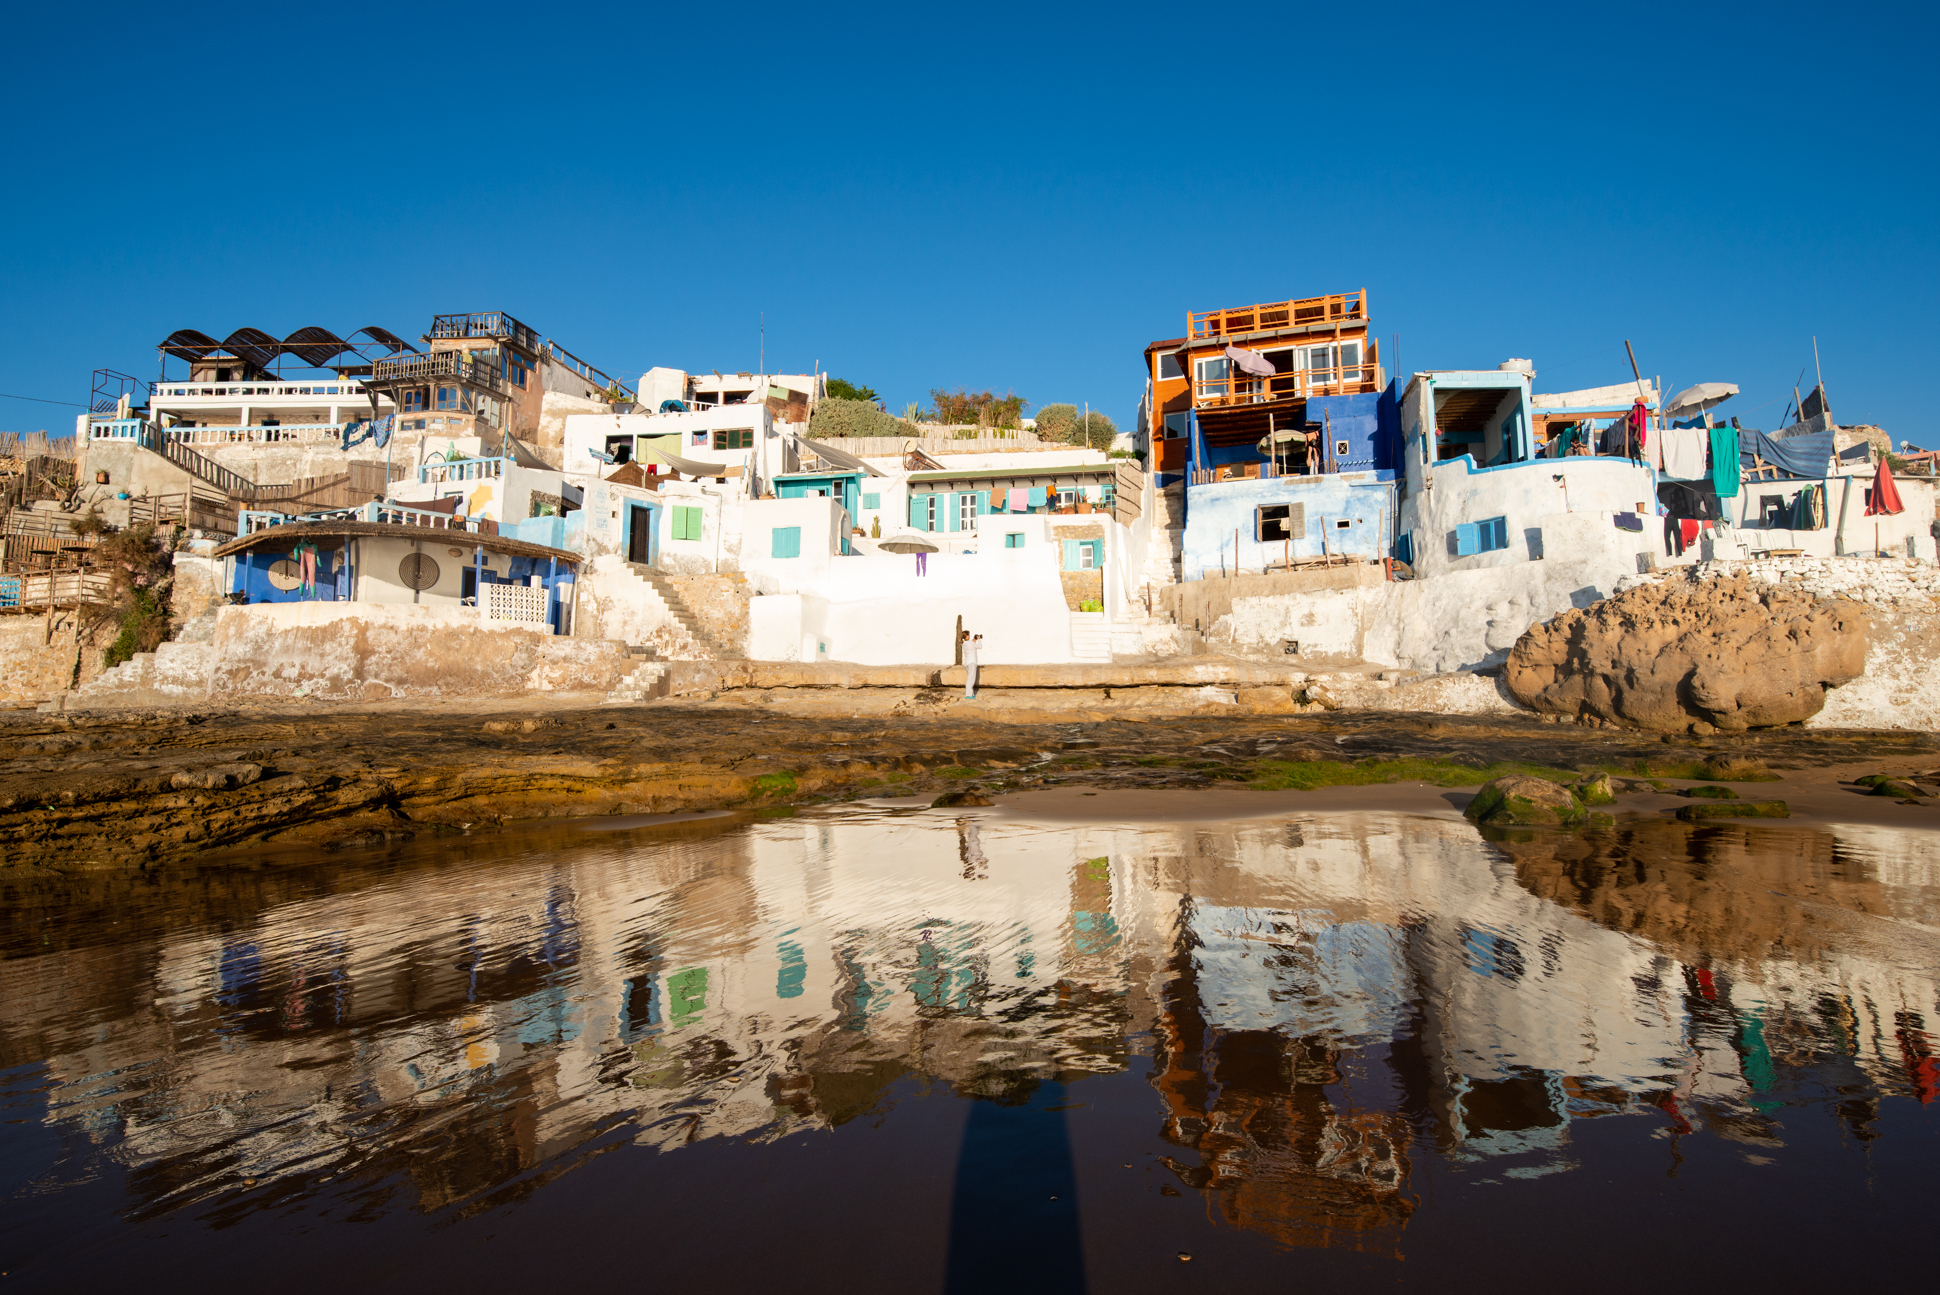 Beach houses reflecting in the ocean of Imsouane, Morocco, during sunset.